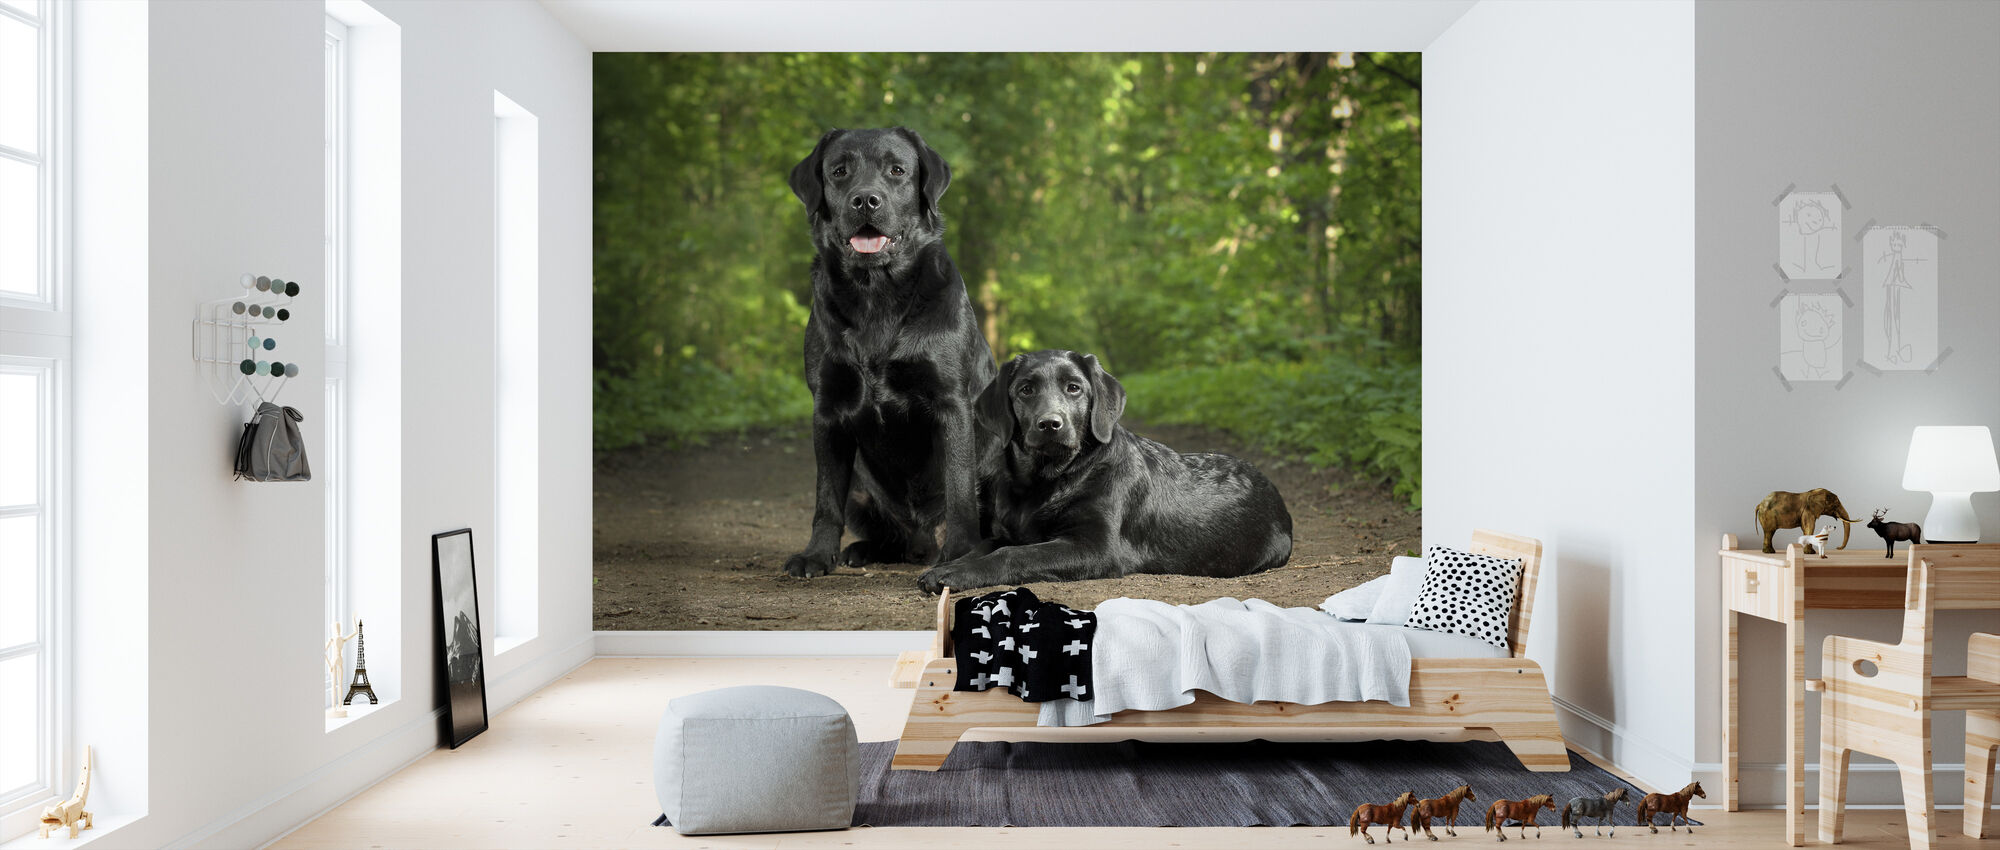 Two Black Labradors - Wallpaper - Kids Room